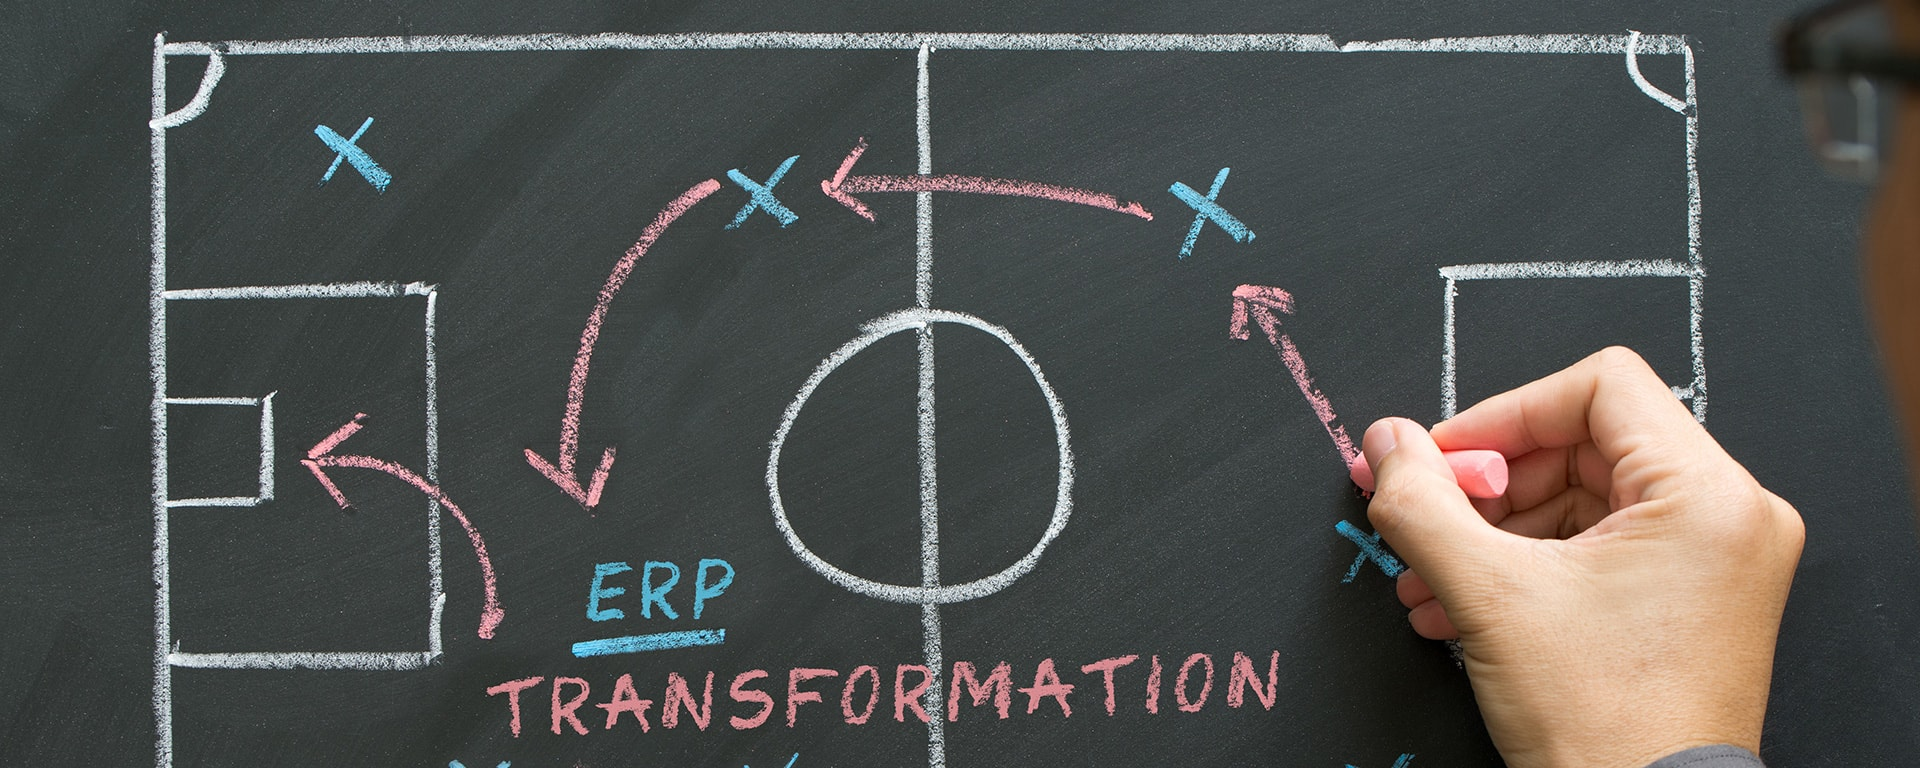 ERP Transformation tactics - Man planning for a football strategy on blackboard